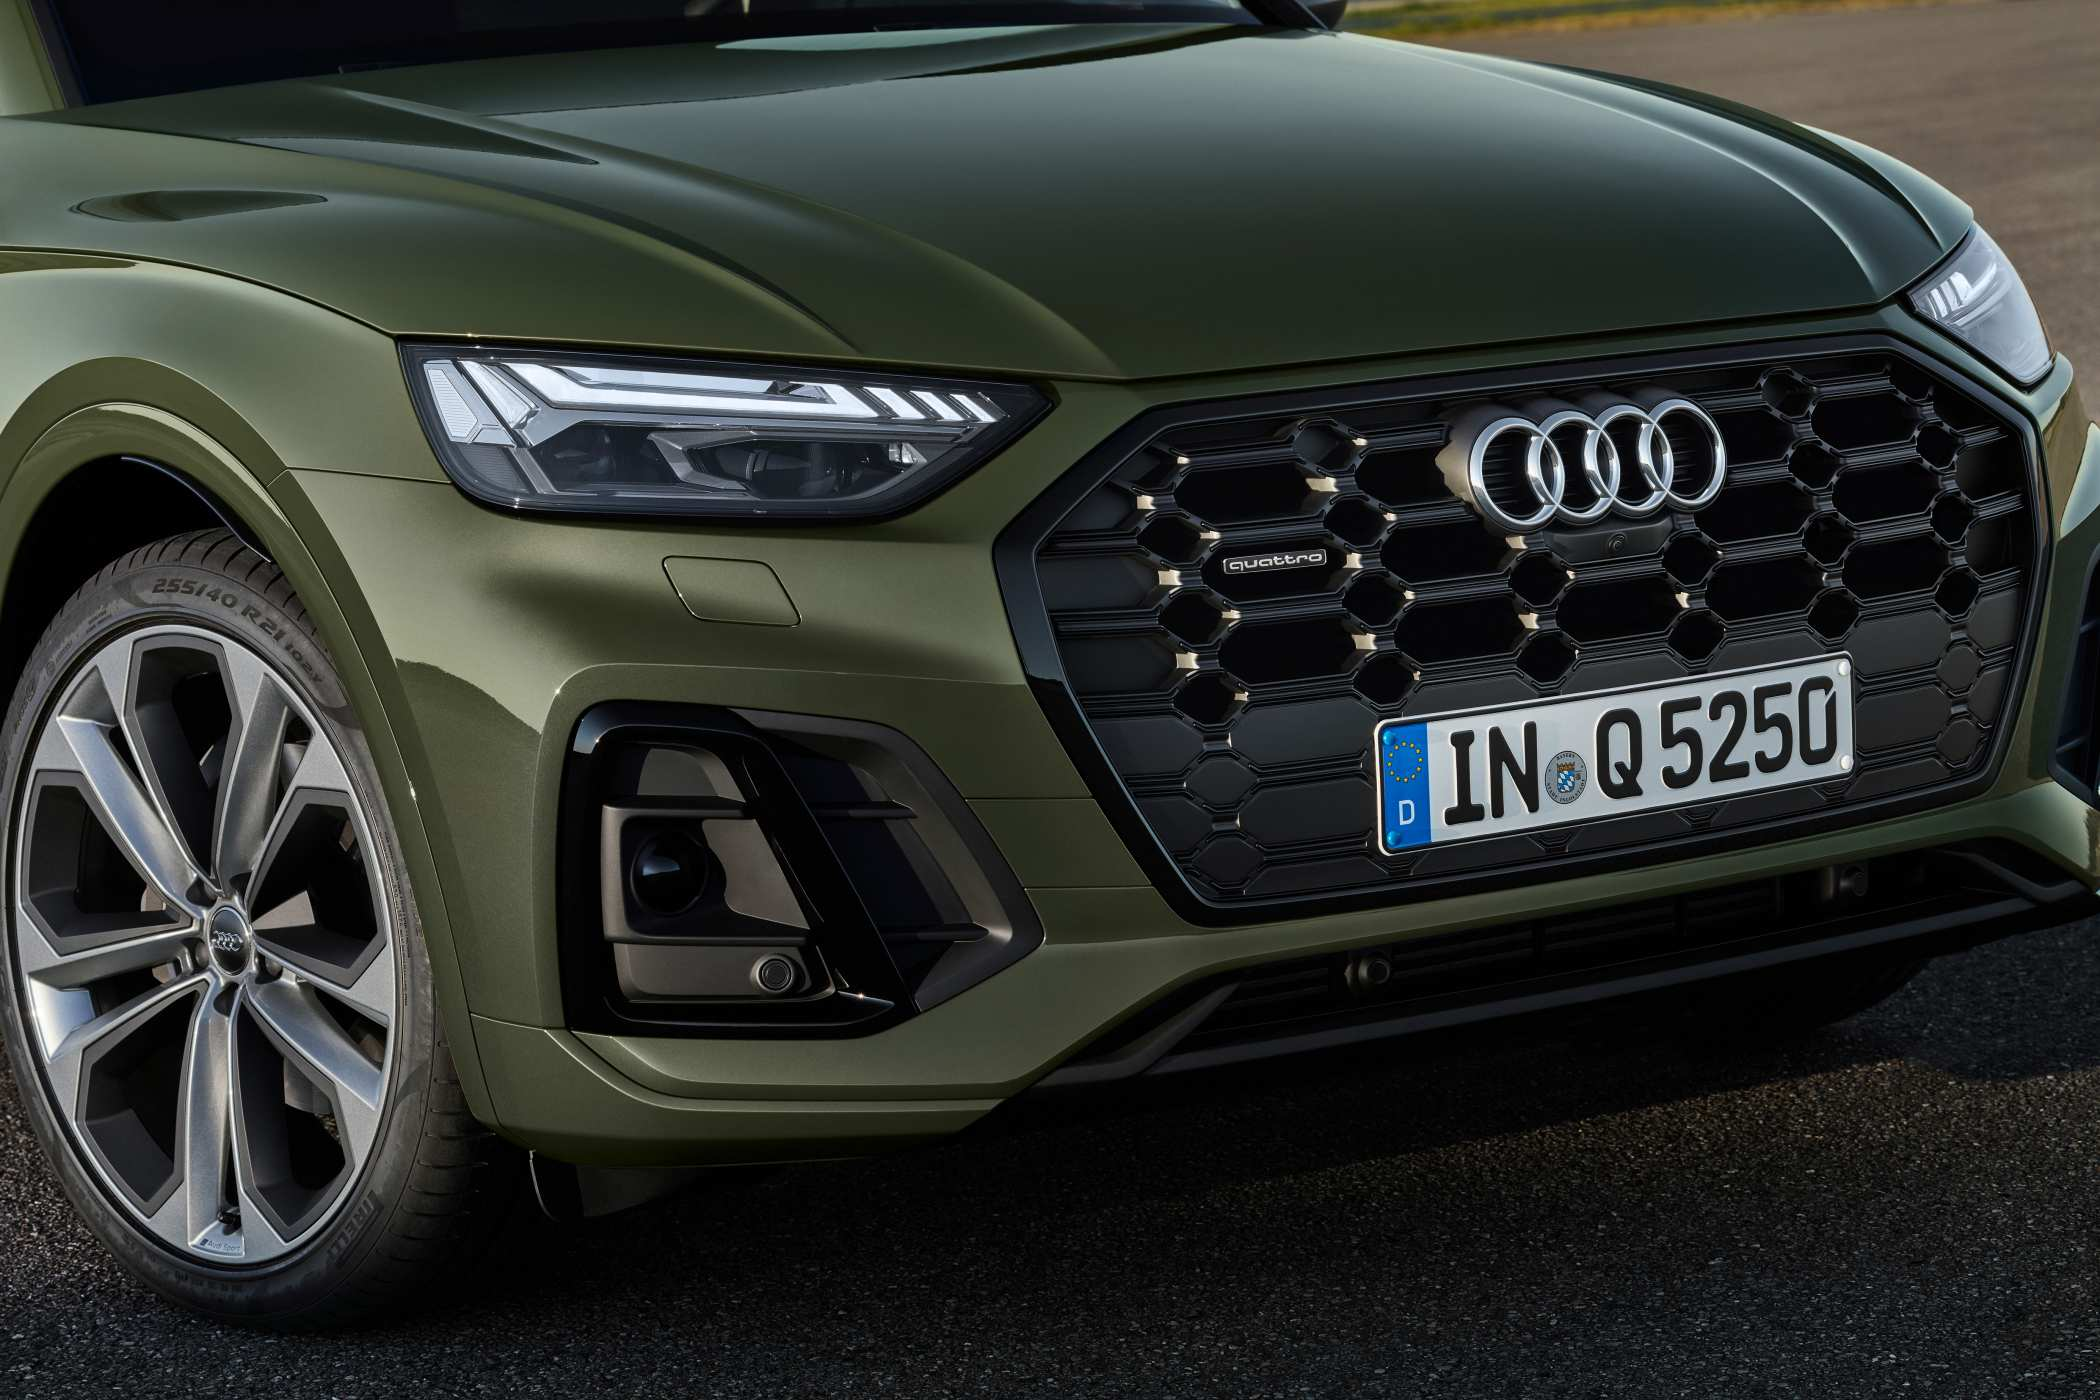 The new Audi Q5 is expected to arrive in Australia in the first-half of 2021.